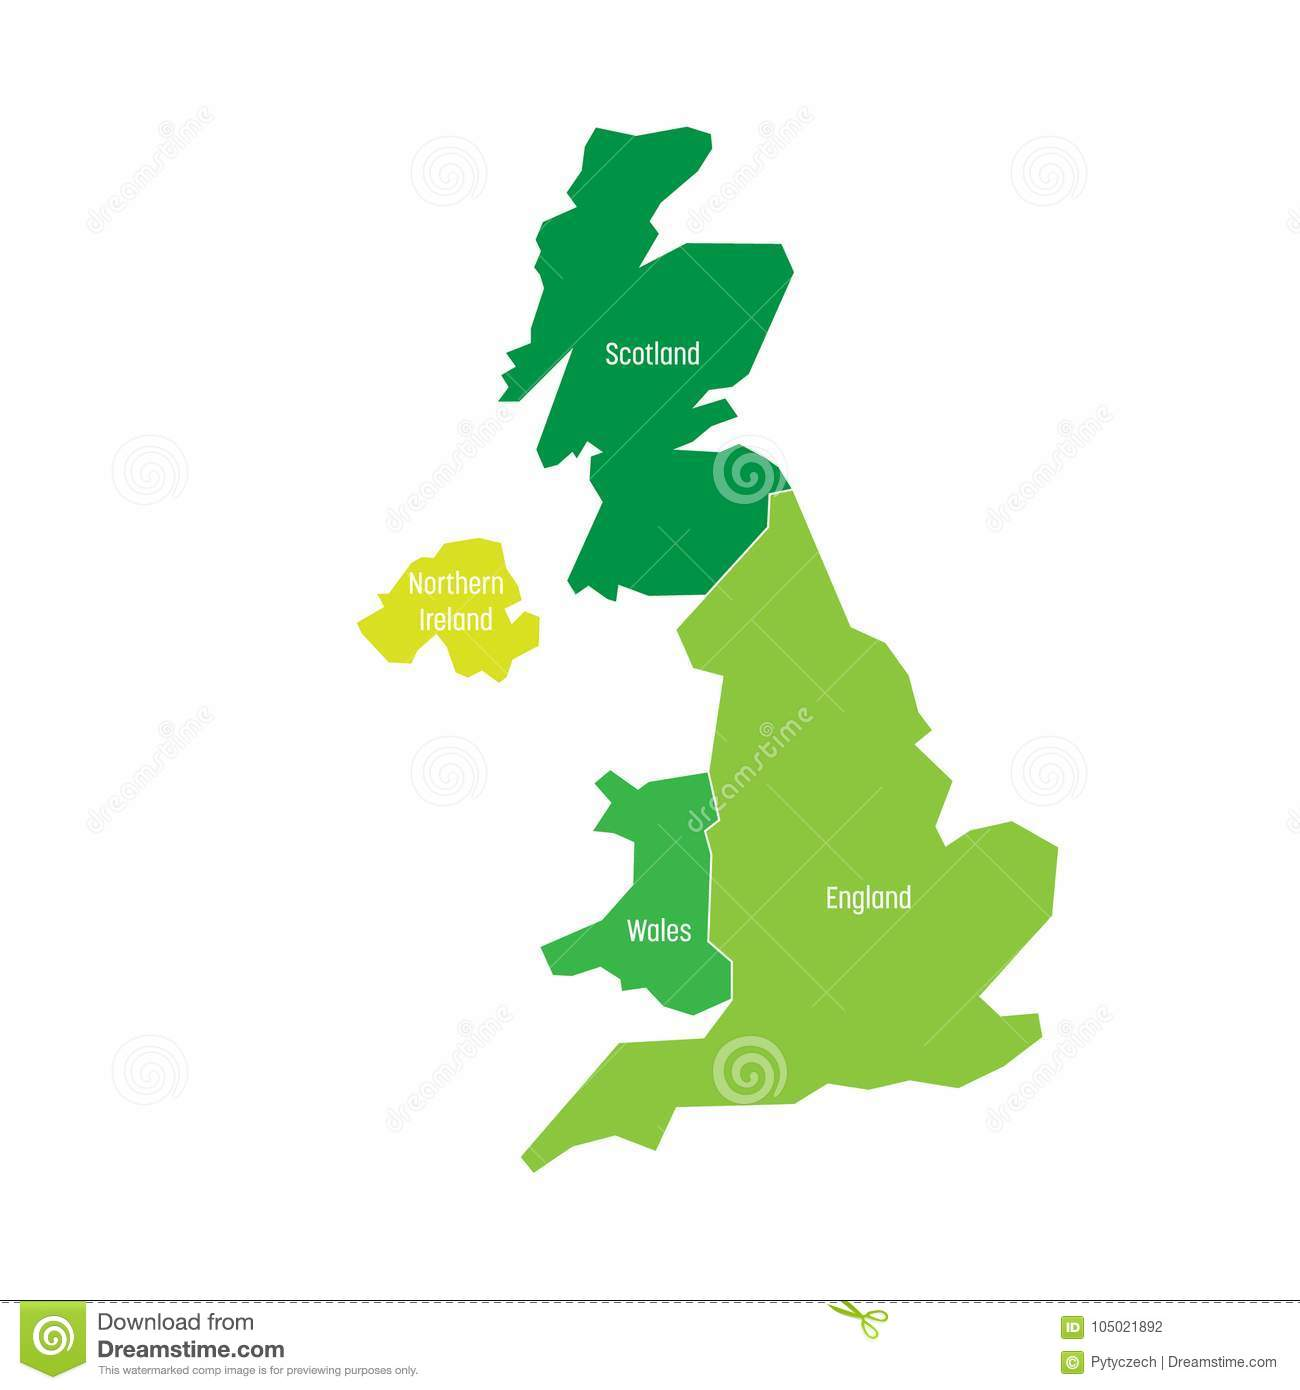 Map Of Uk Scotland And Ireland.United Kingdom Uk Of Great Britain And Northern Ireland Map